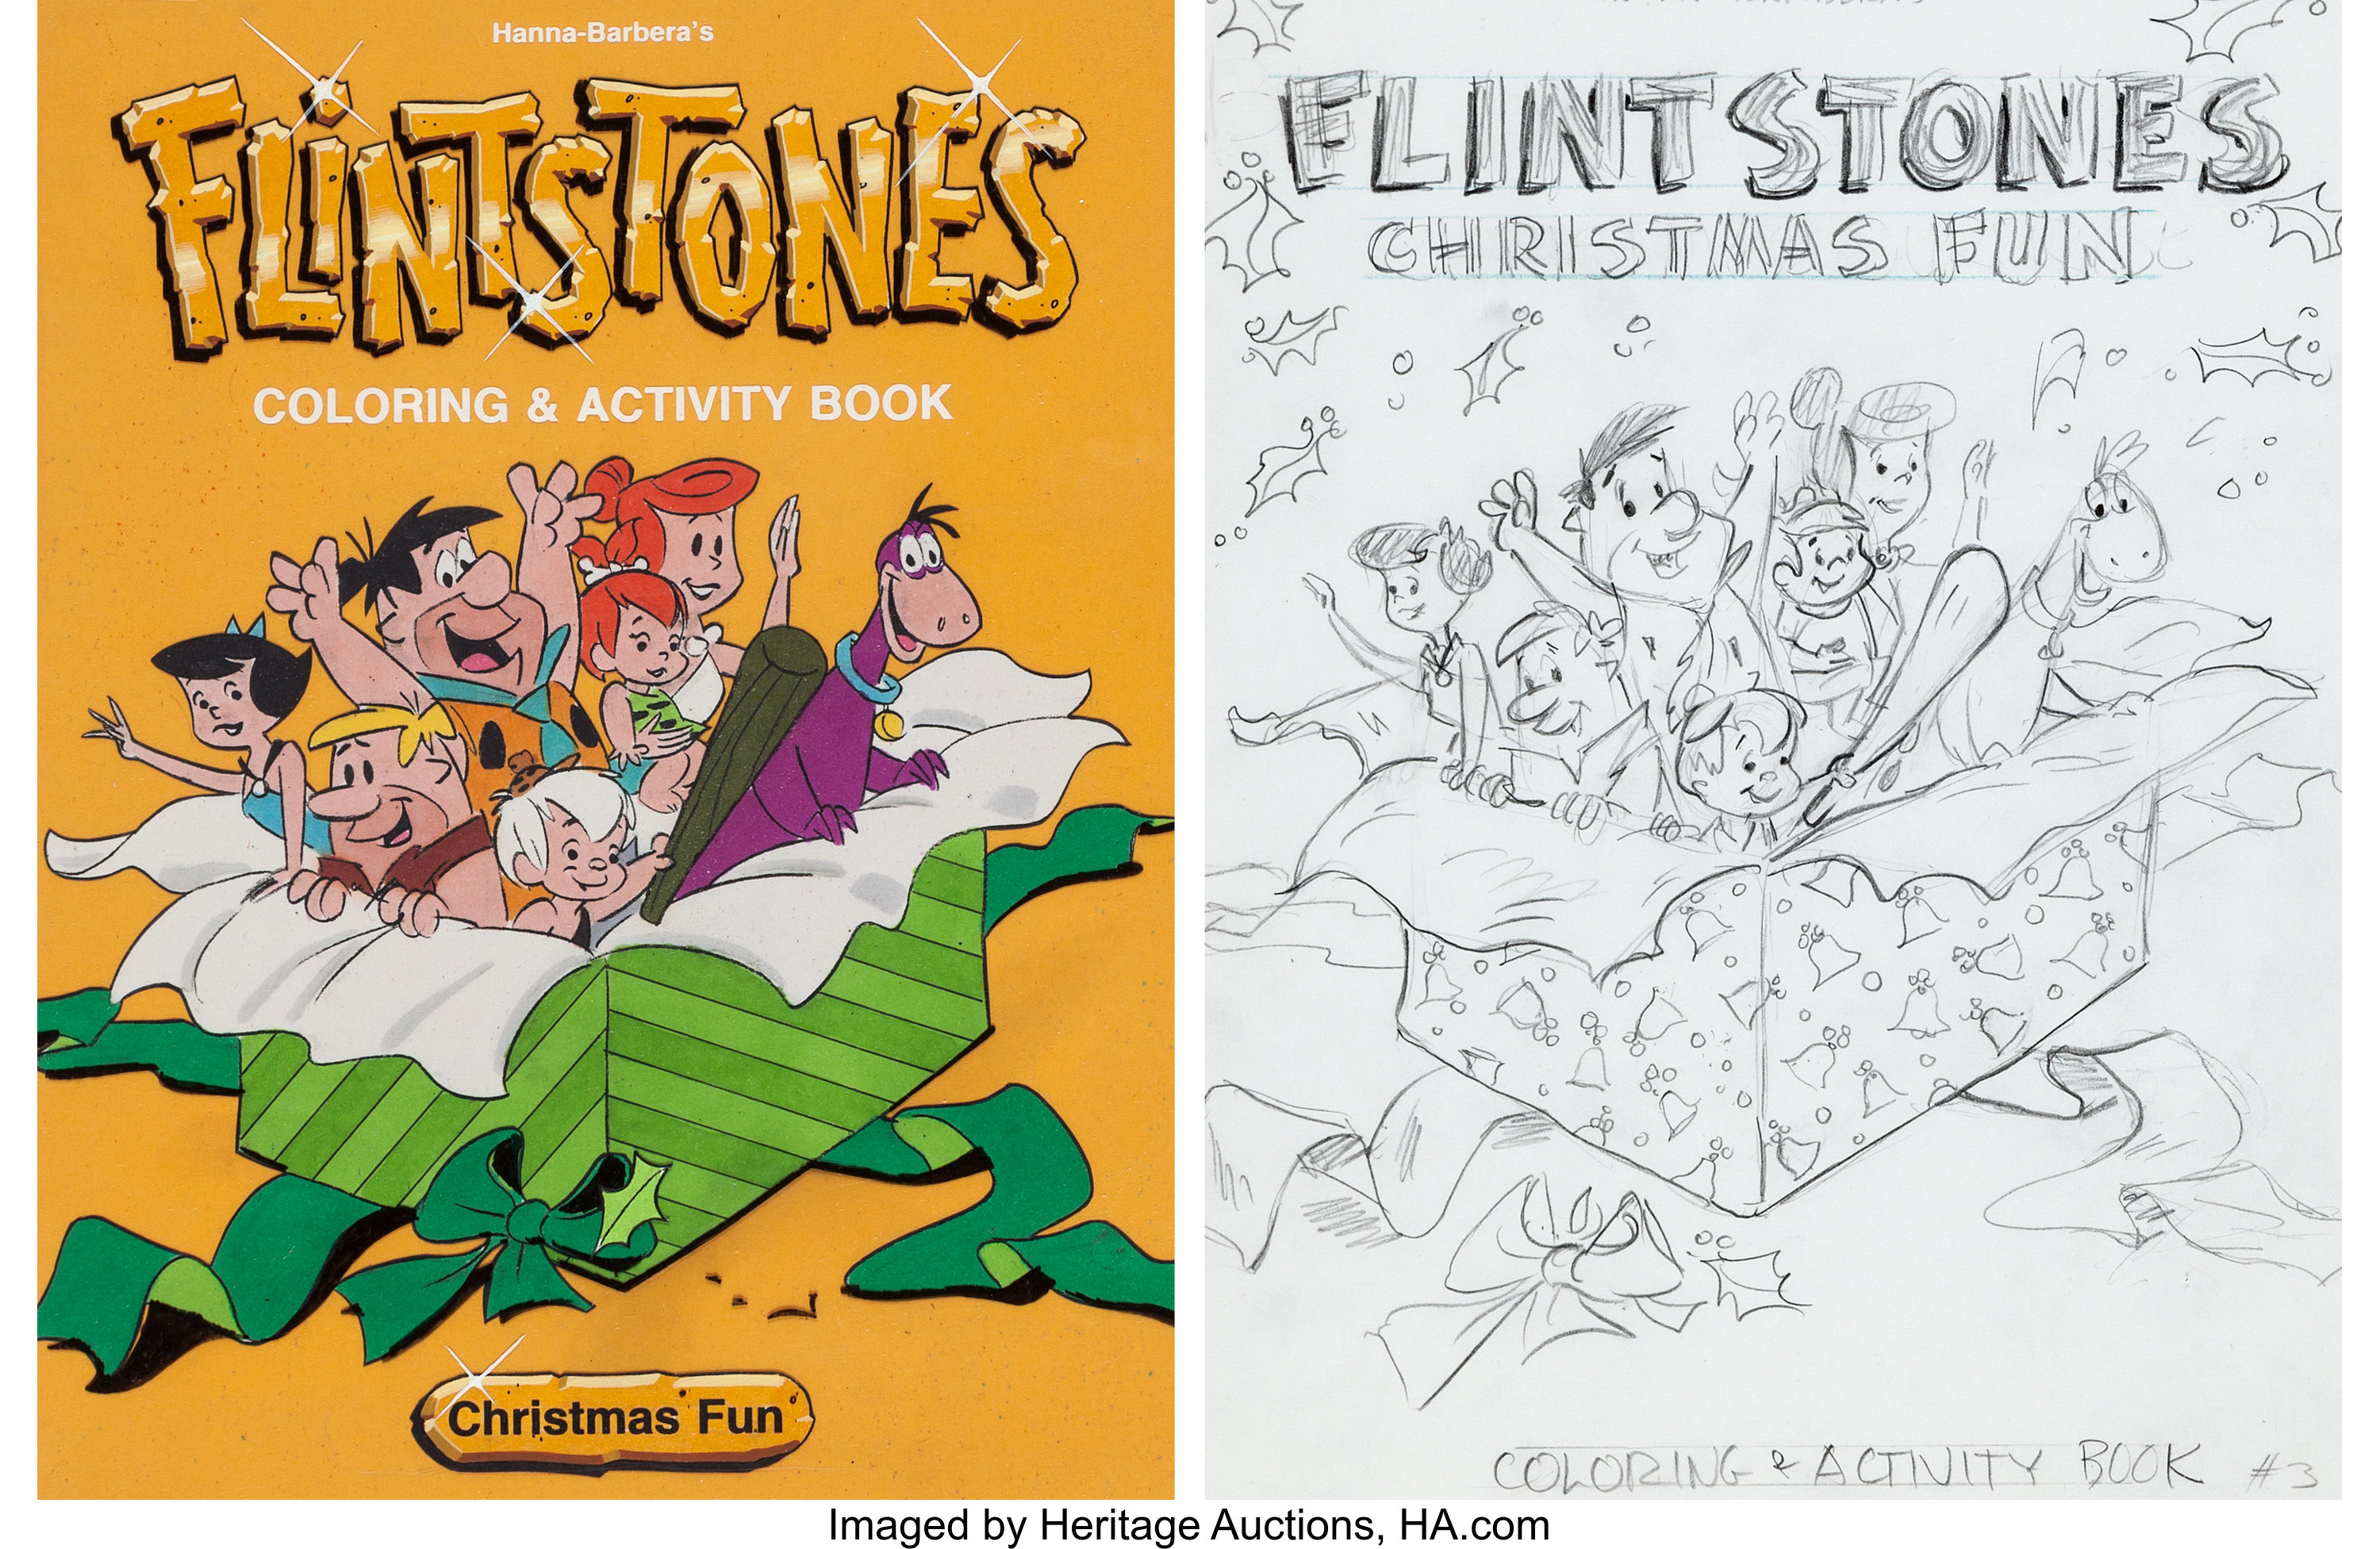 Flintstones Coloring Page - flintstones fred and barney | All Kids ... | 1953x3000